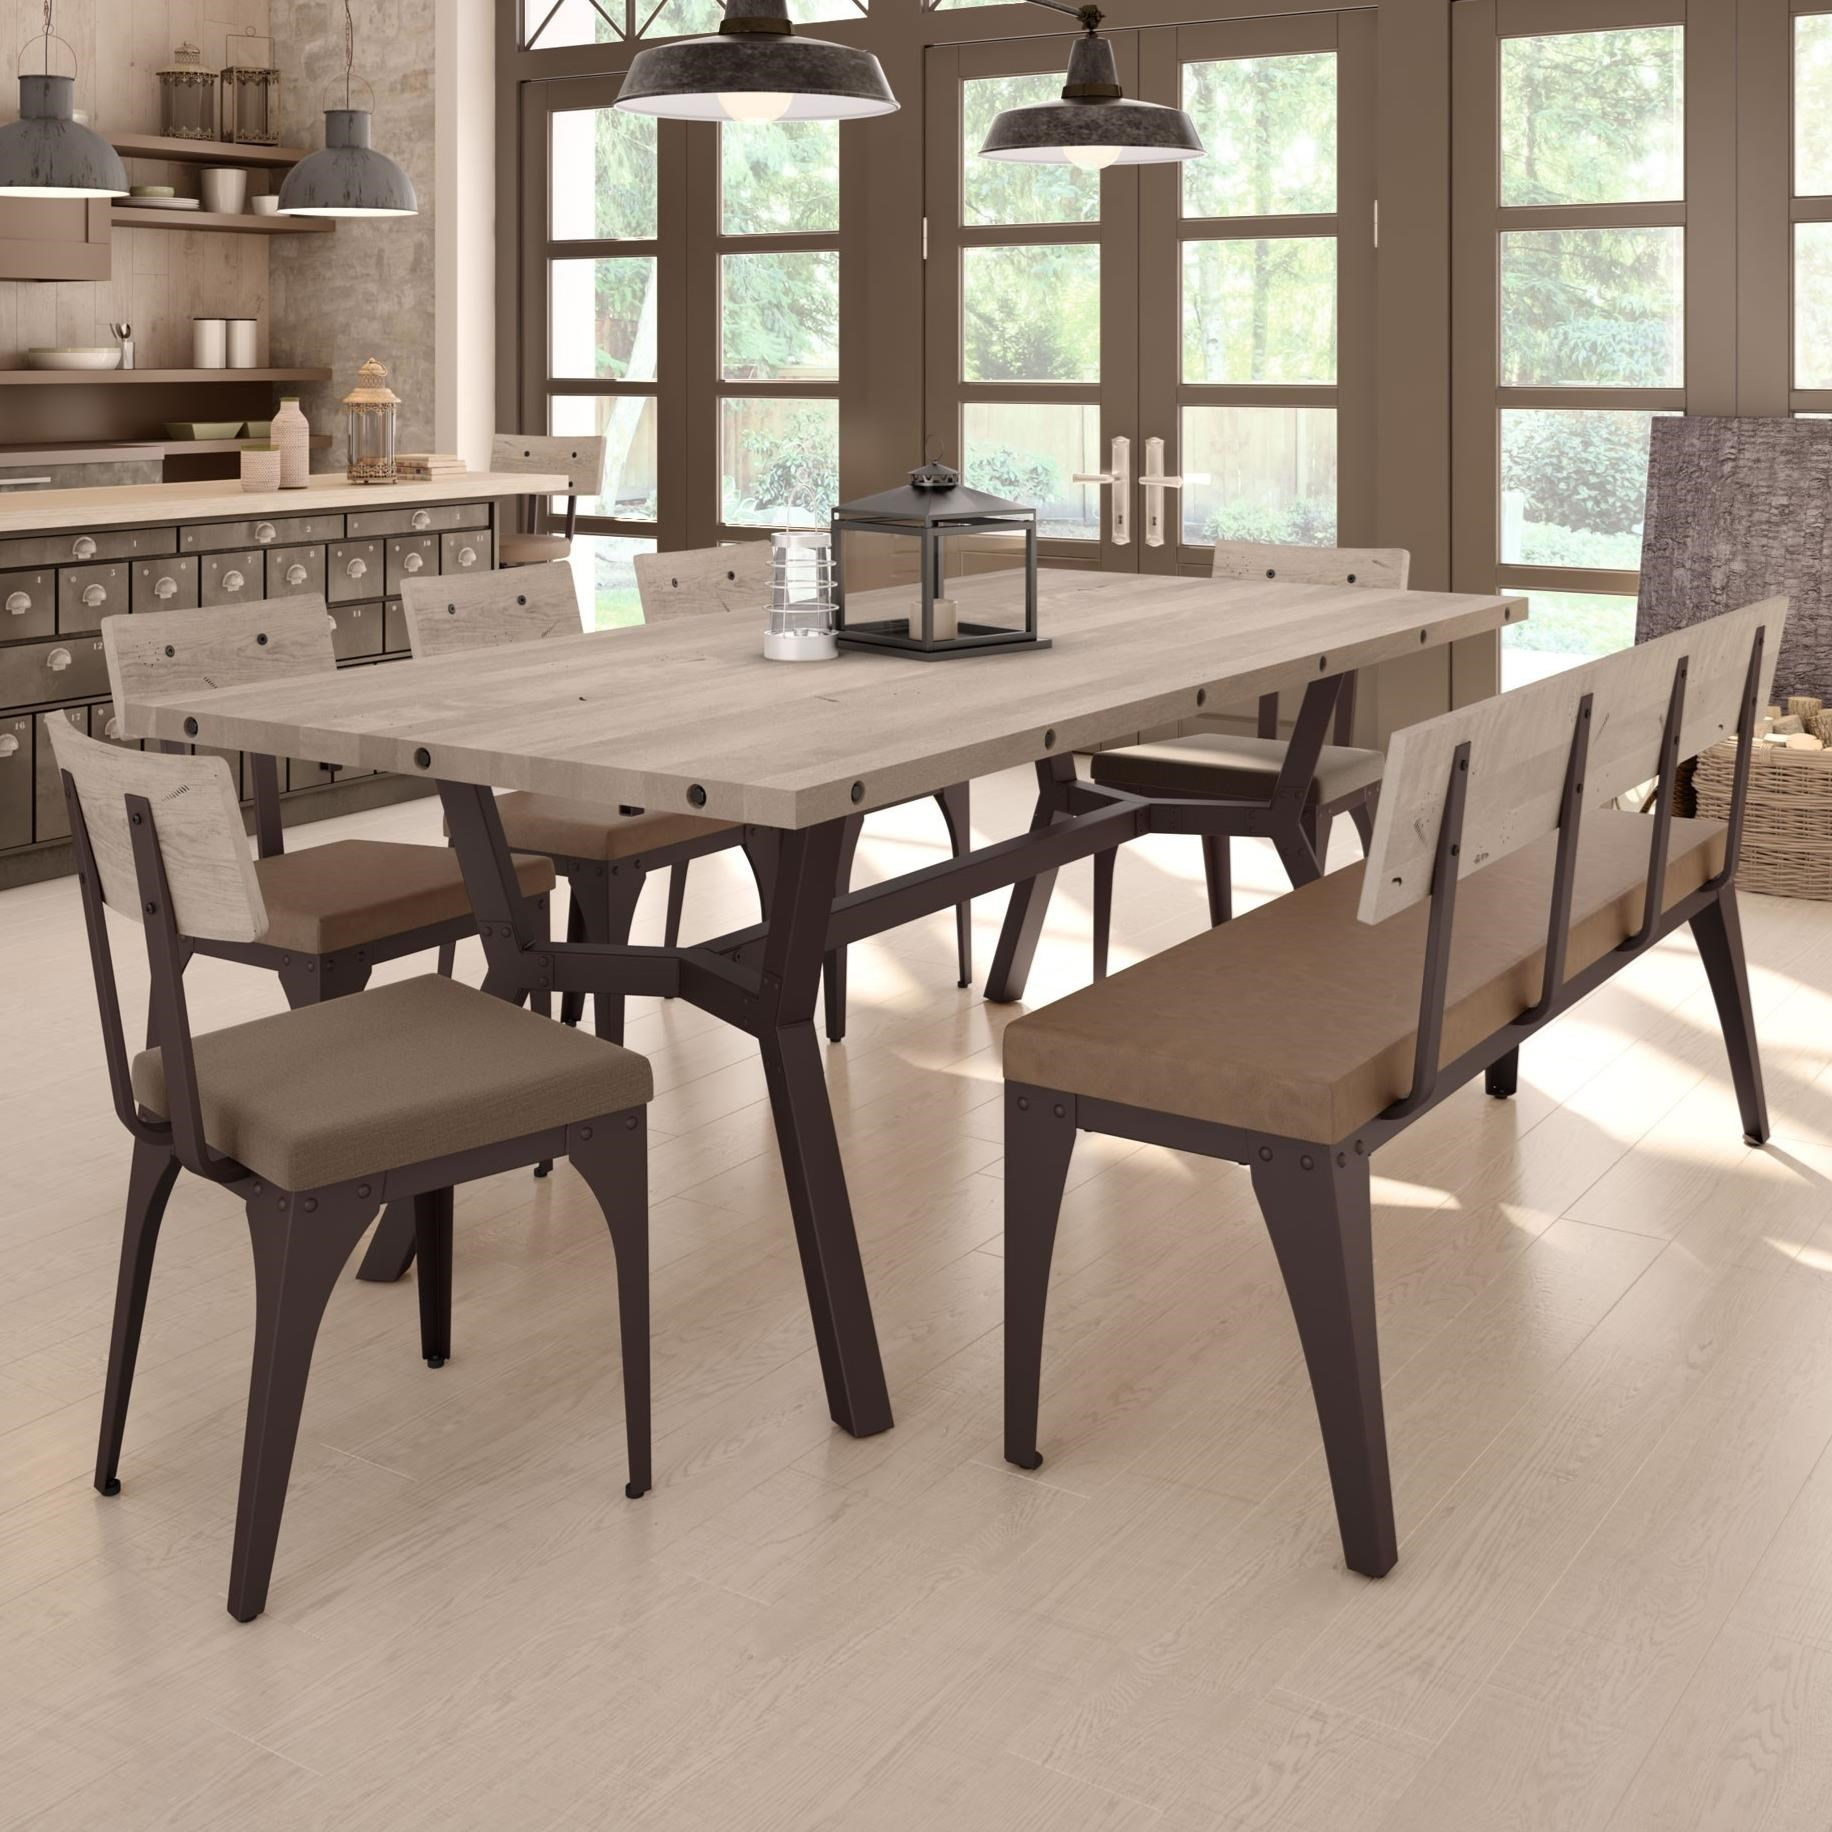 Industrial Southcross Dining Table Set with Bench by Amisco at SuperStore